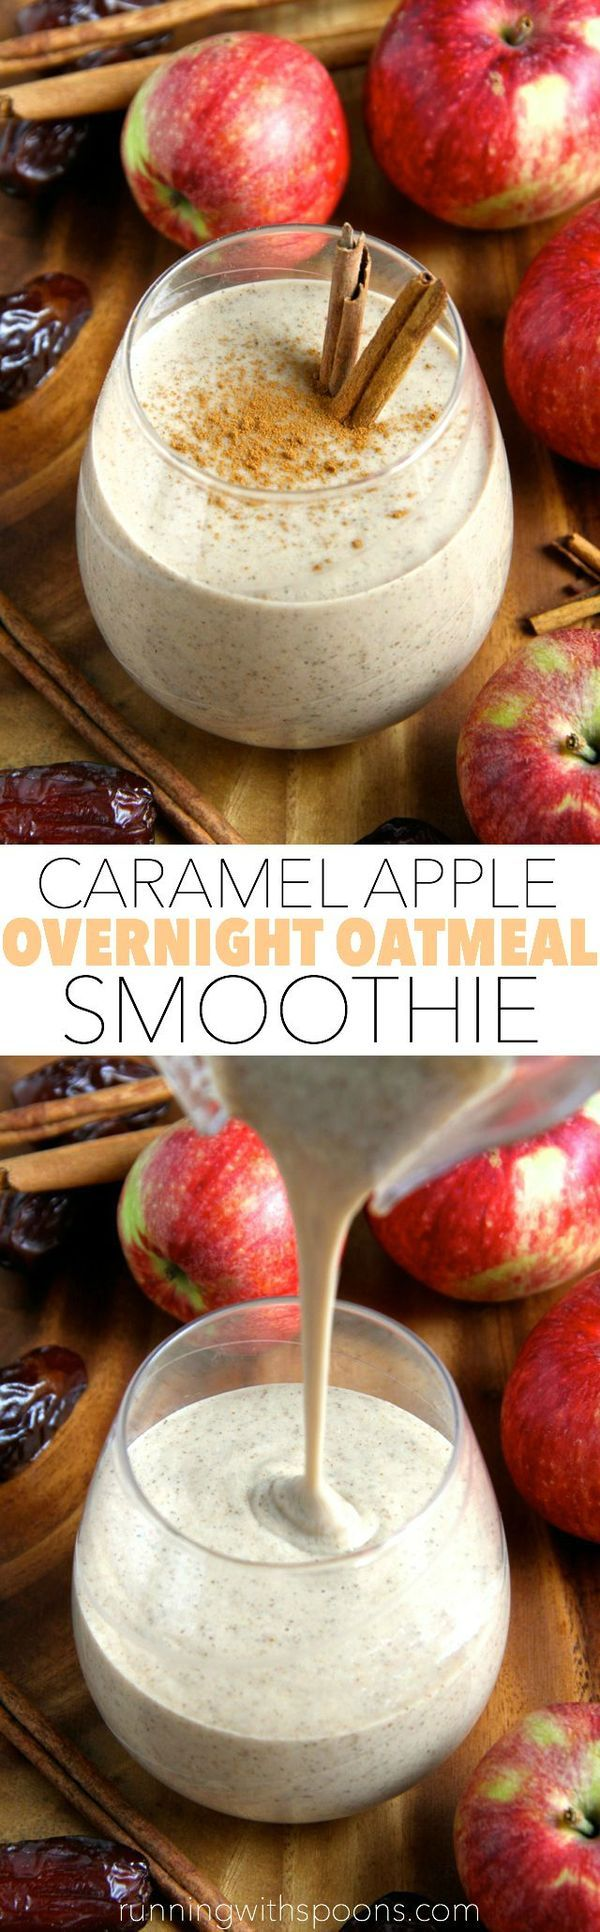 Make a Caramel Apple Overnight Oatmeal Smoothie for a decadent breakfast that's still healthy! Perfect for the fall!